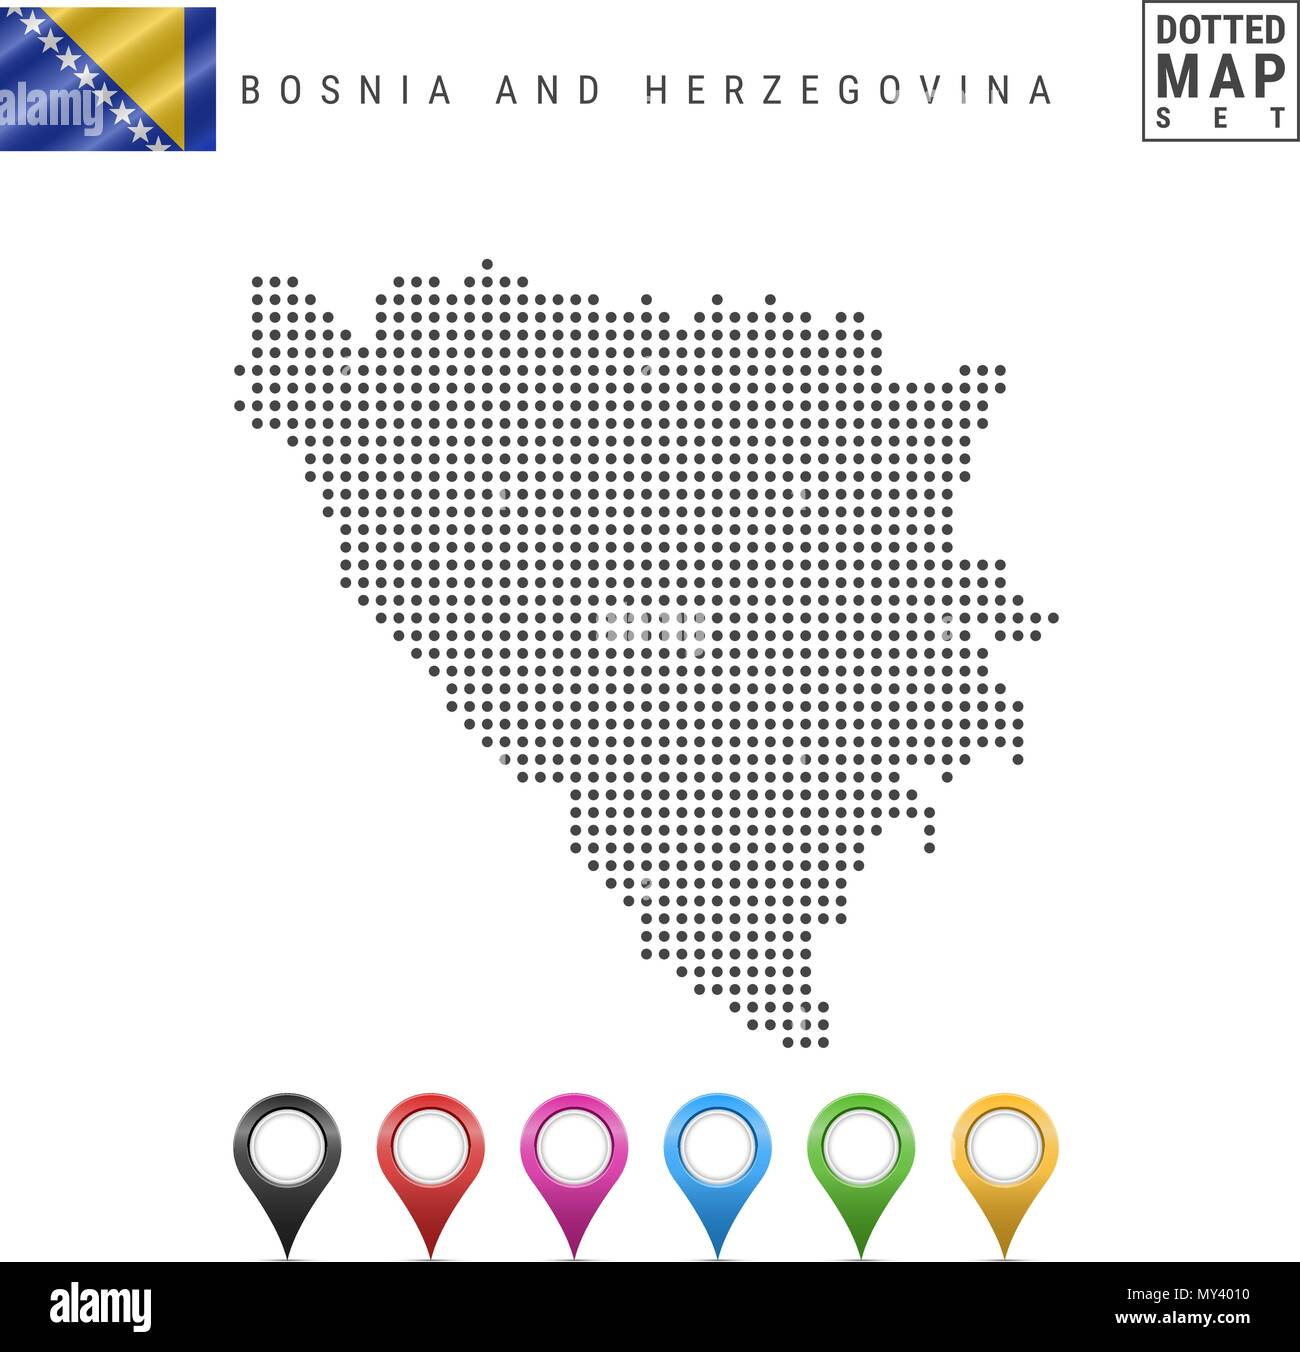 Vector Dotted Map of Bosnia and Herzegovina. Bosnia and Herzegovina Silhouette. Bosnia and Herzegovina Flag. Map Markers - Stock Vector